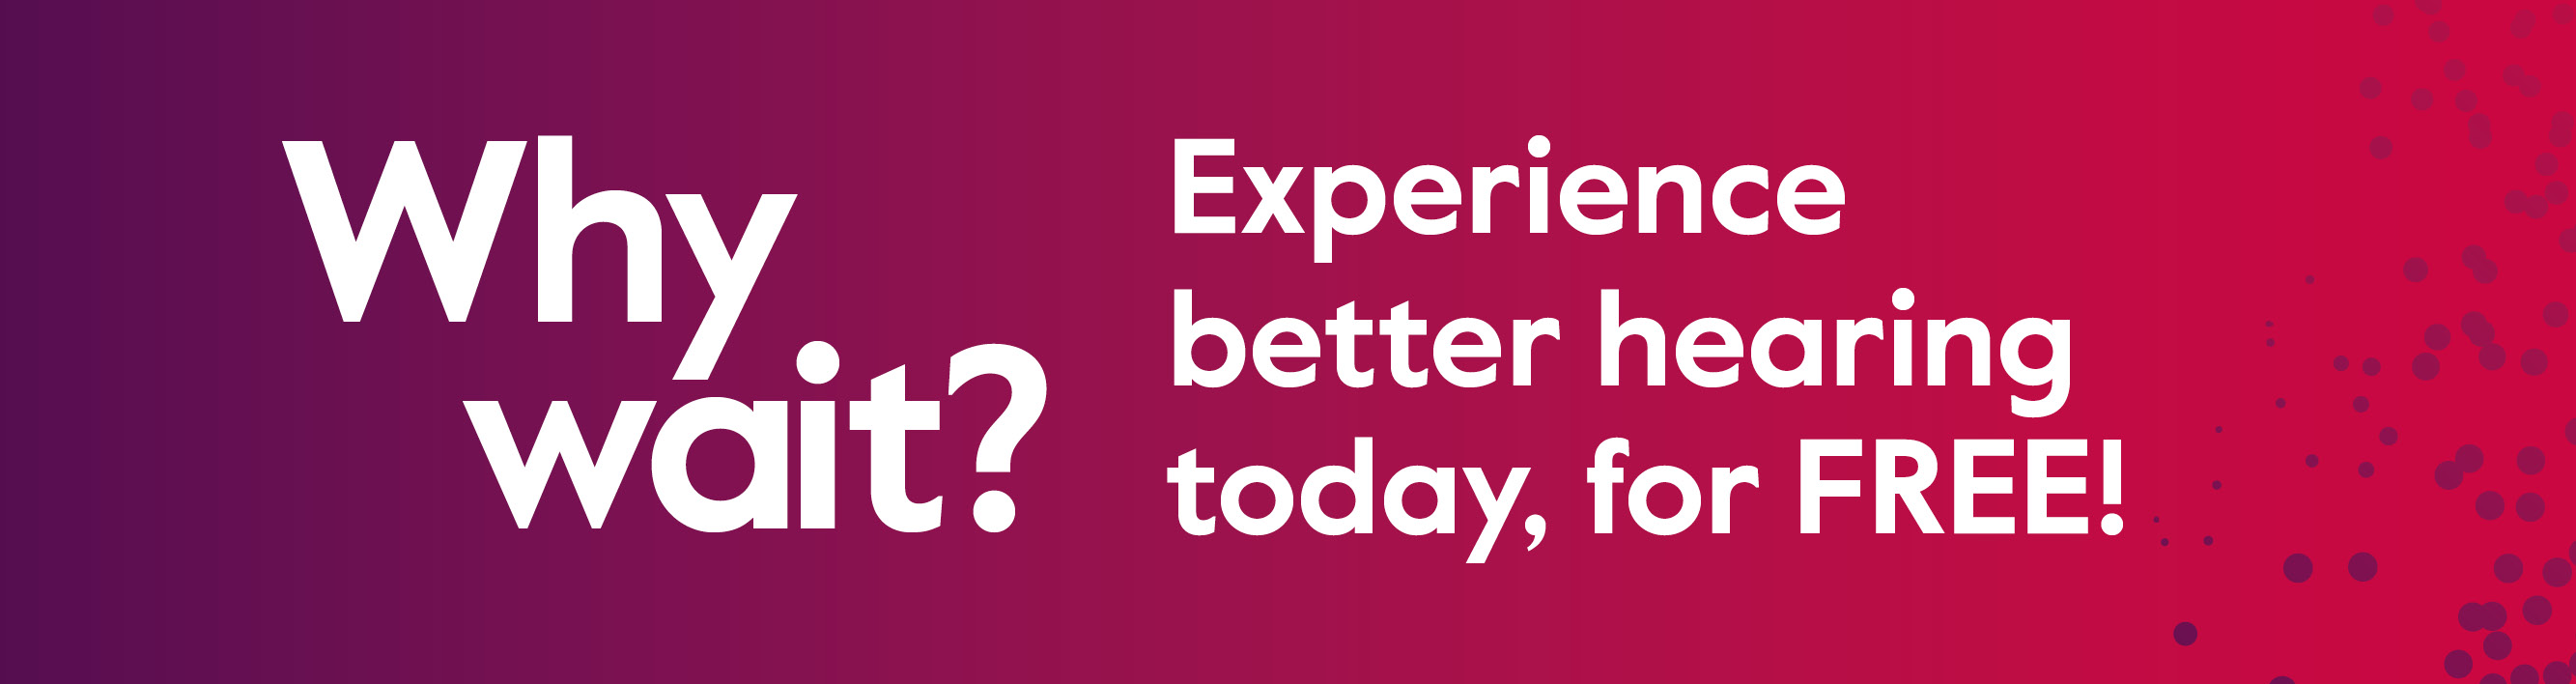 Why wait? Experience better hearing today, for FREE.